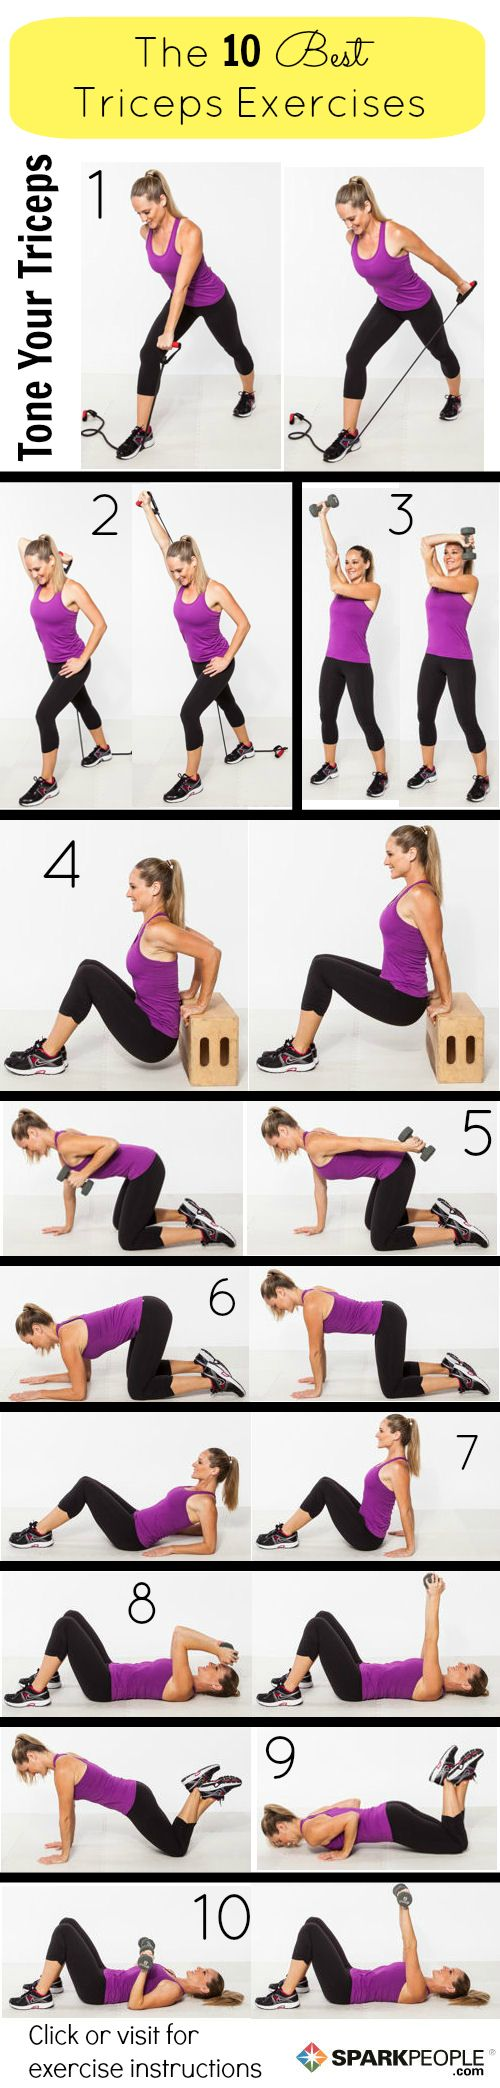 10 Exercises For The Triceps